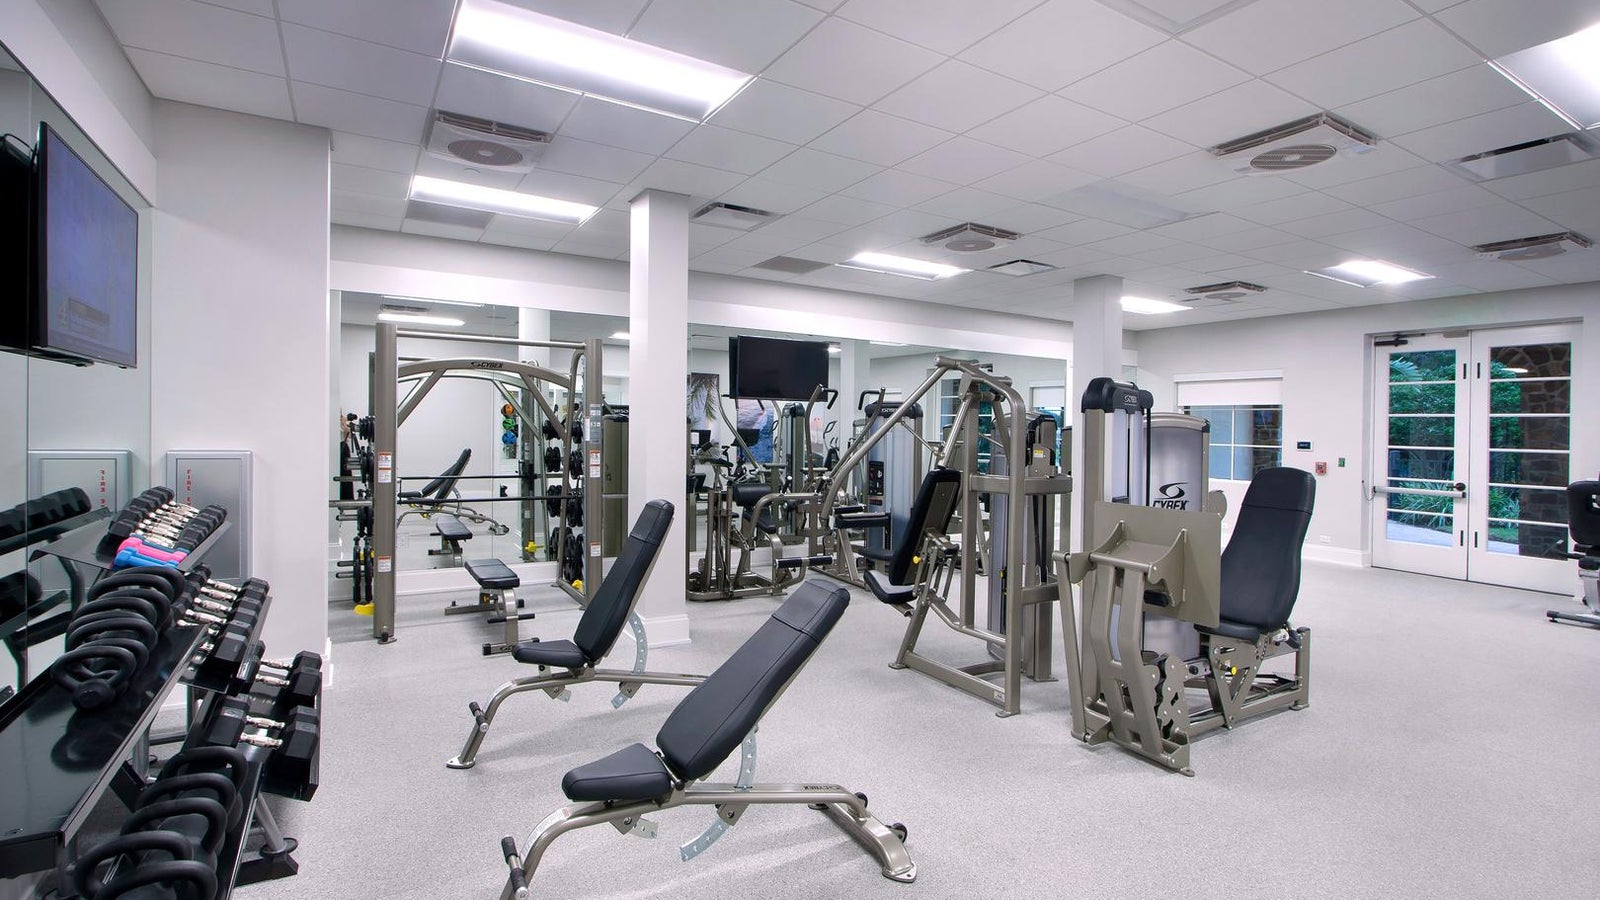 The Fitness Center at the Lake Club in Lakewood Ranch Florida